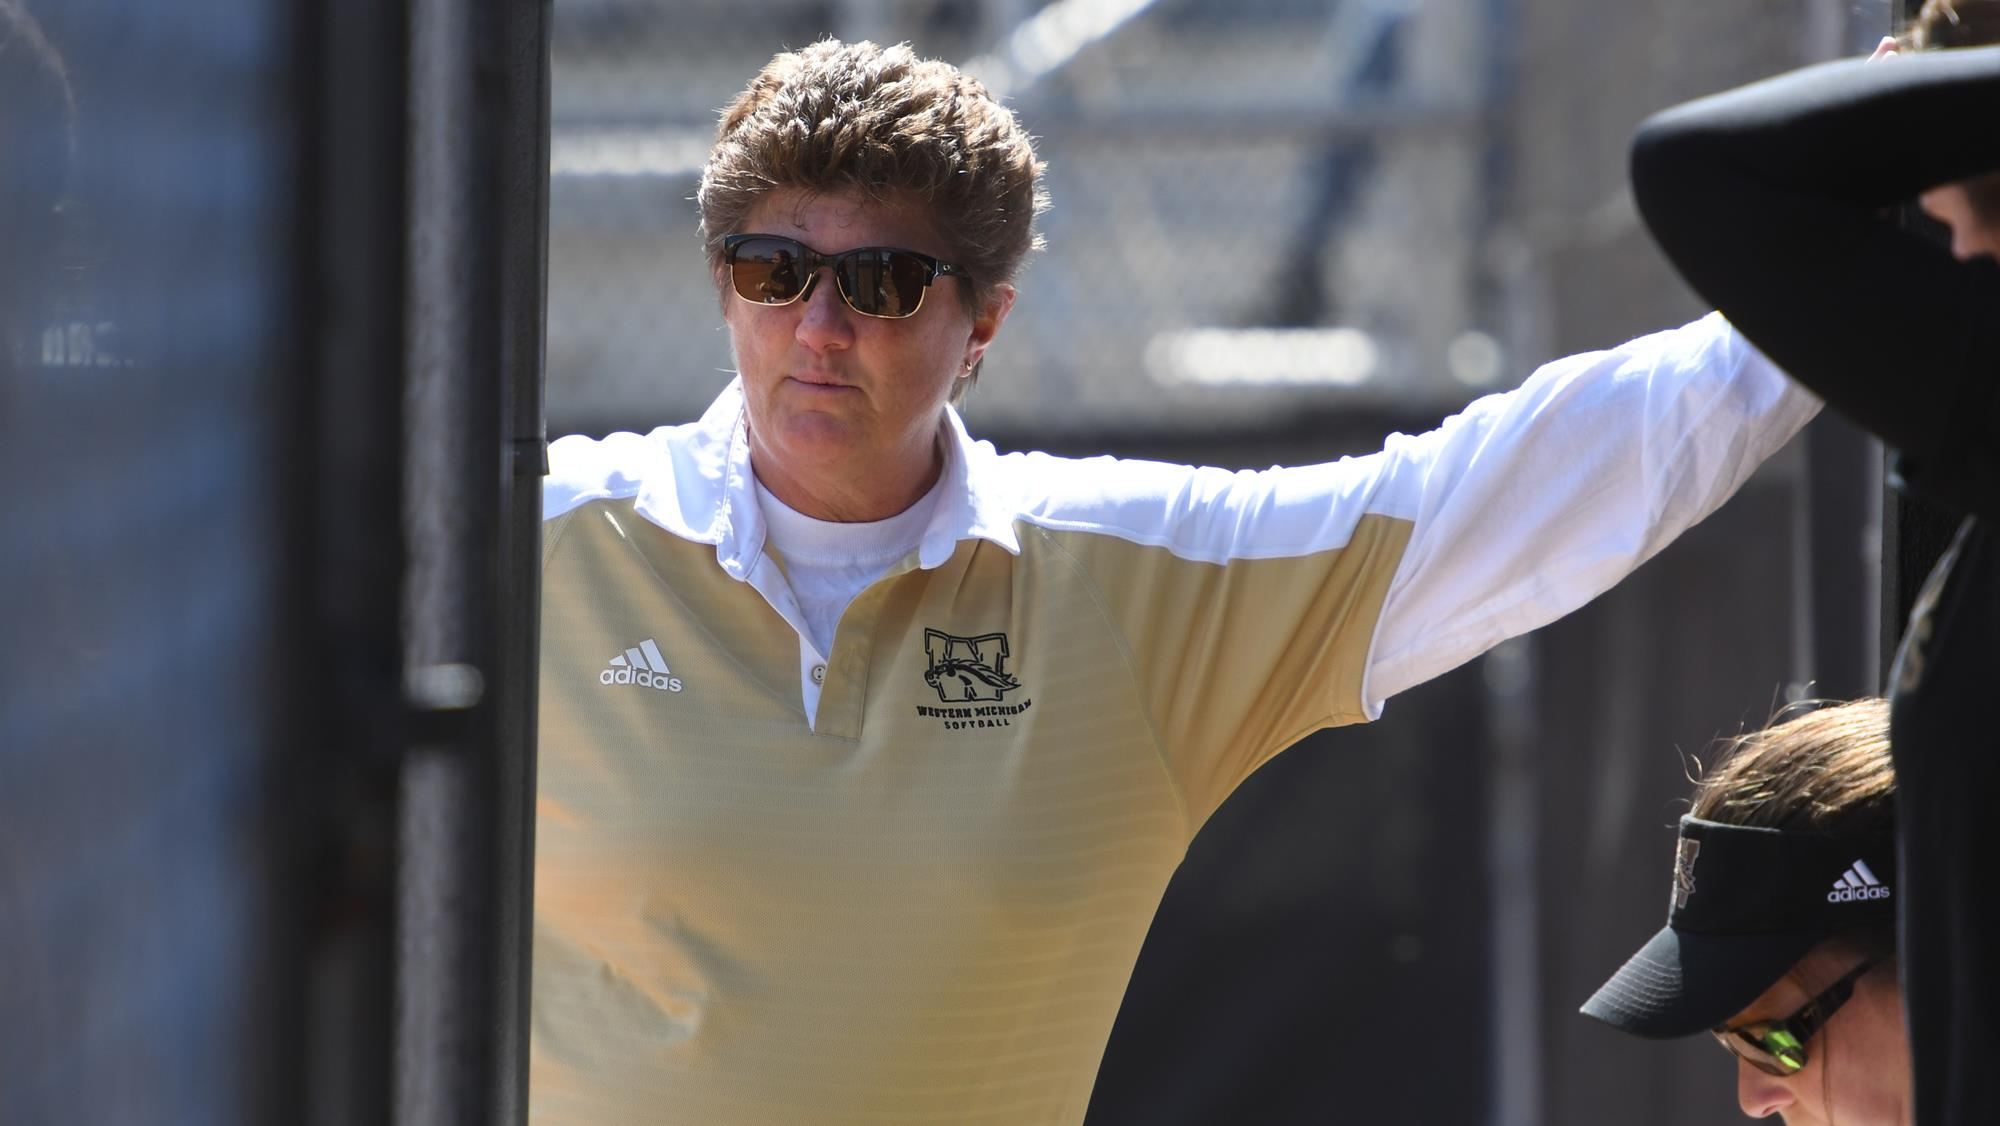 Leitke Honored For 700 Career Wins at NFCA Convention - Western Michigan University